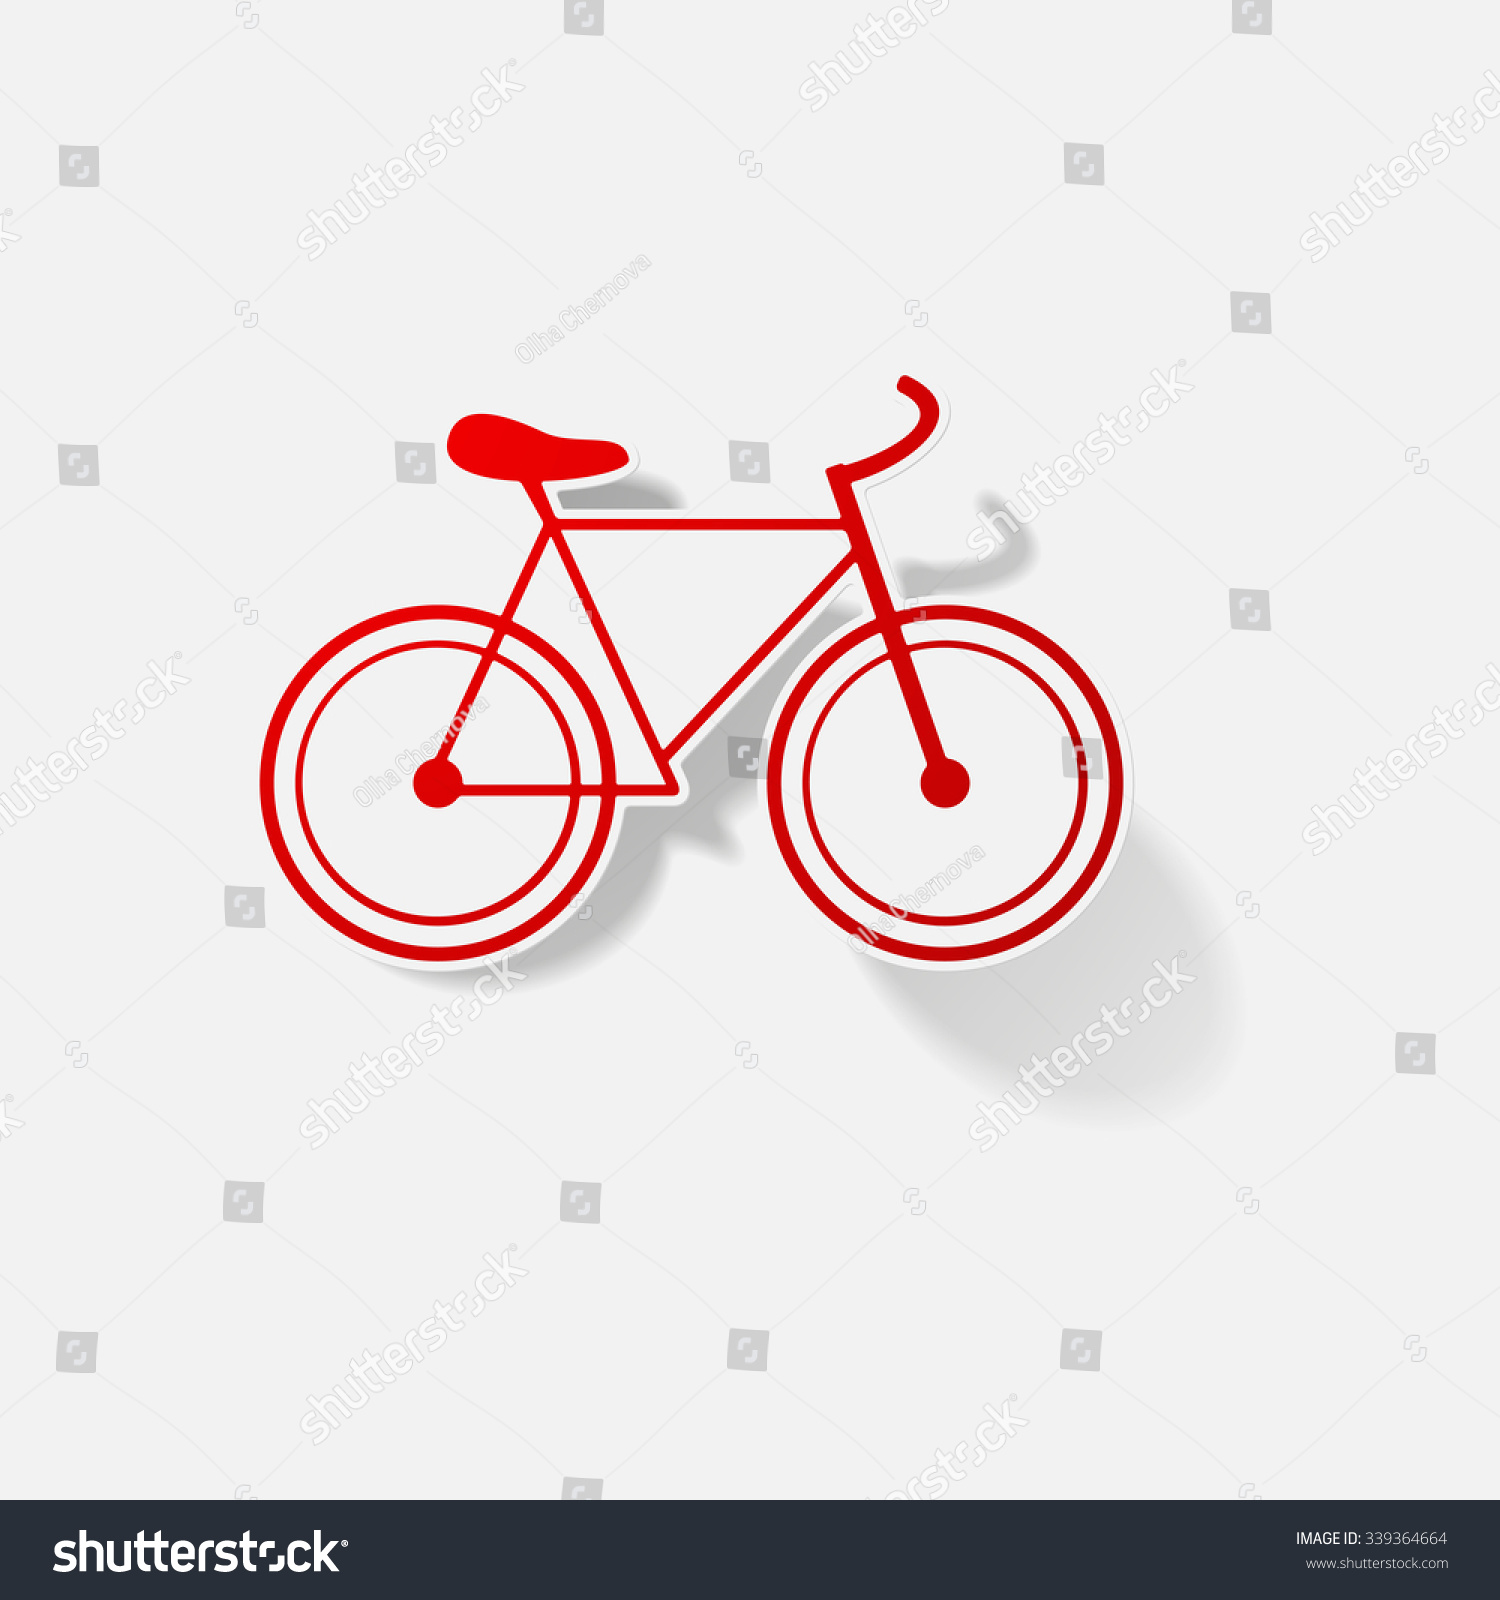 Sticker paper products realistic element design illustration bike